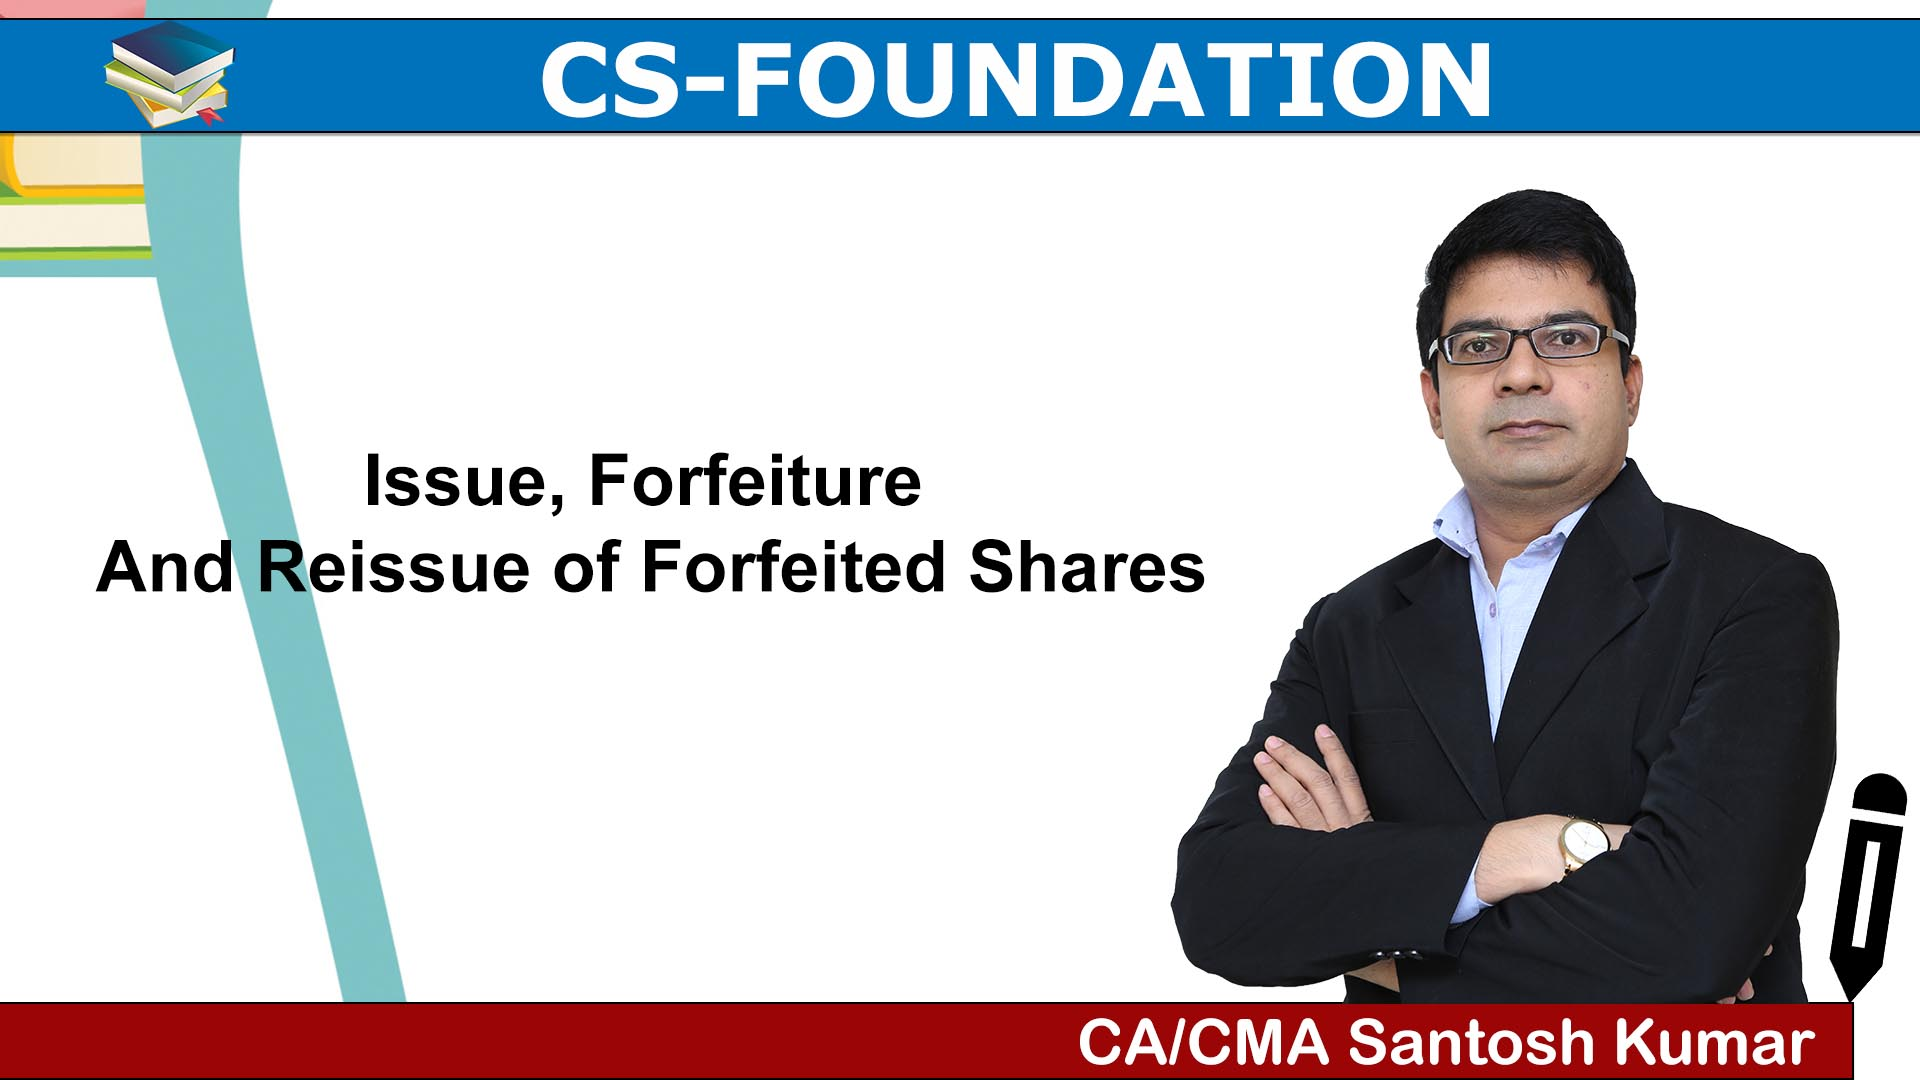 Issue, Forfeiture and Reissue of Forfeited Shares